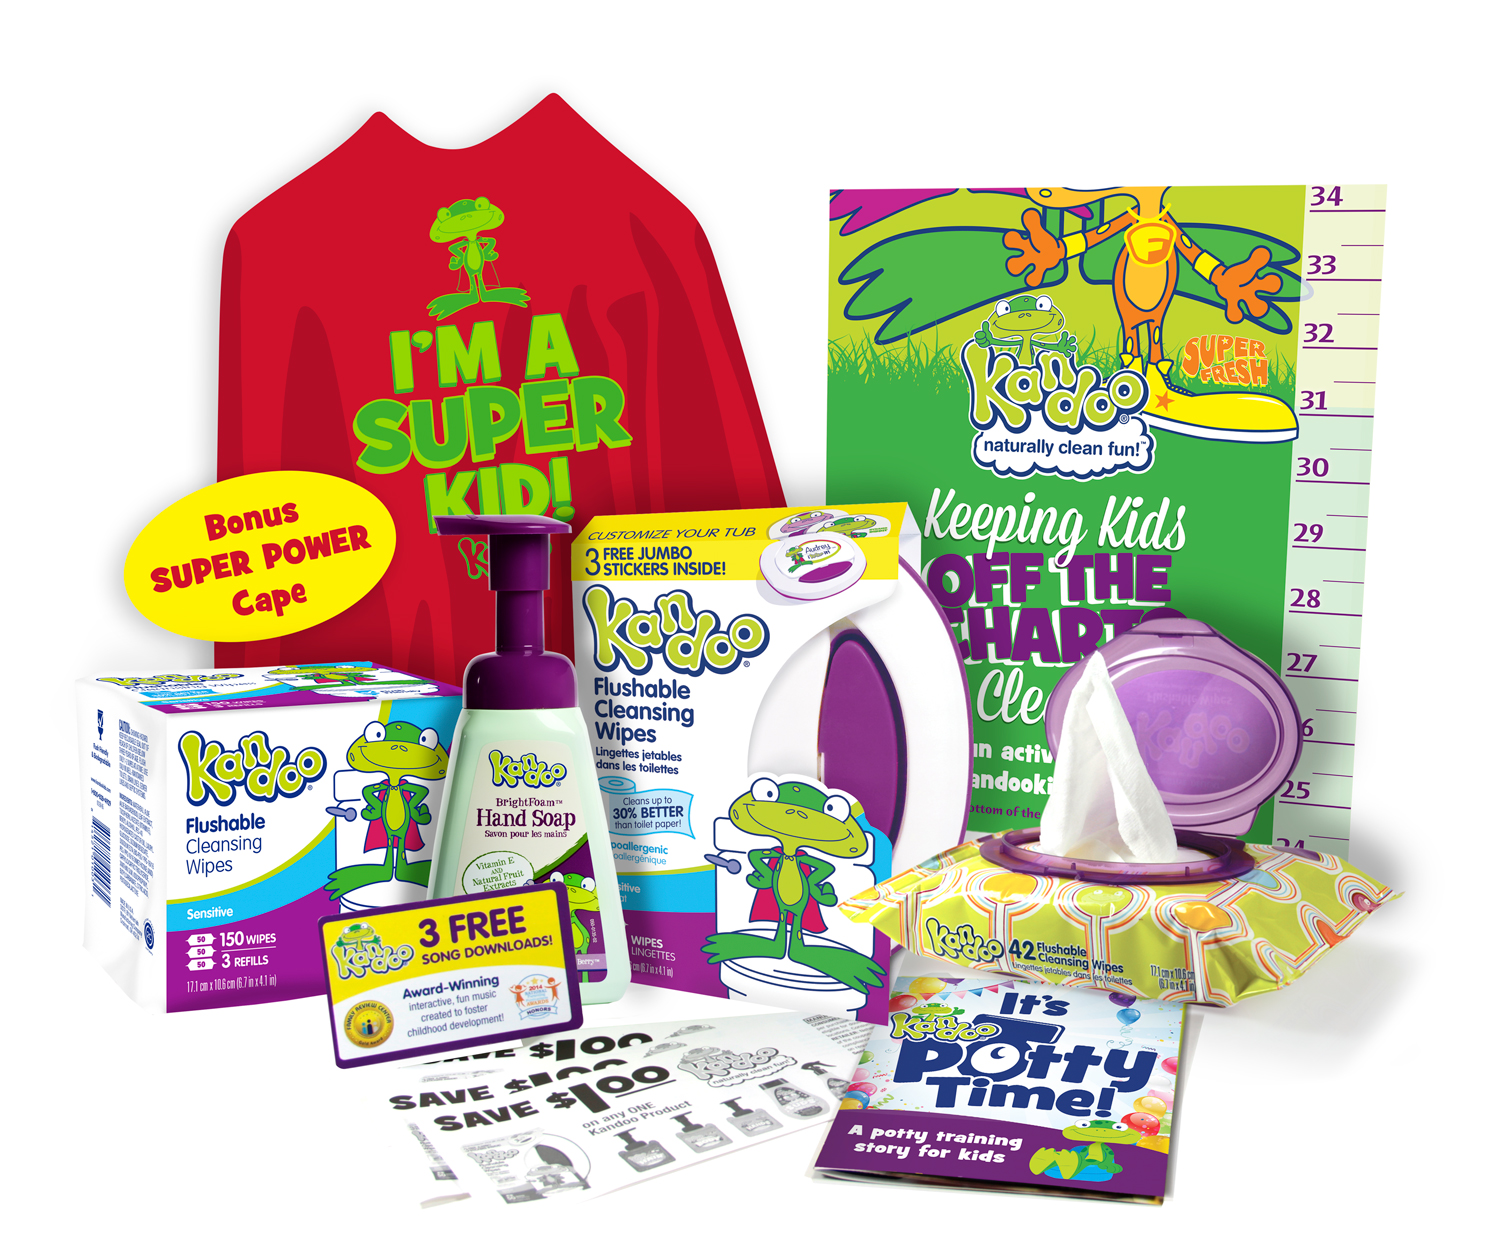 Potty-Time-Pack-no-logo4